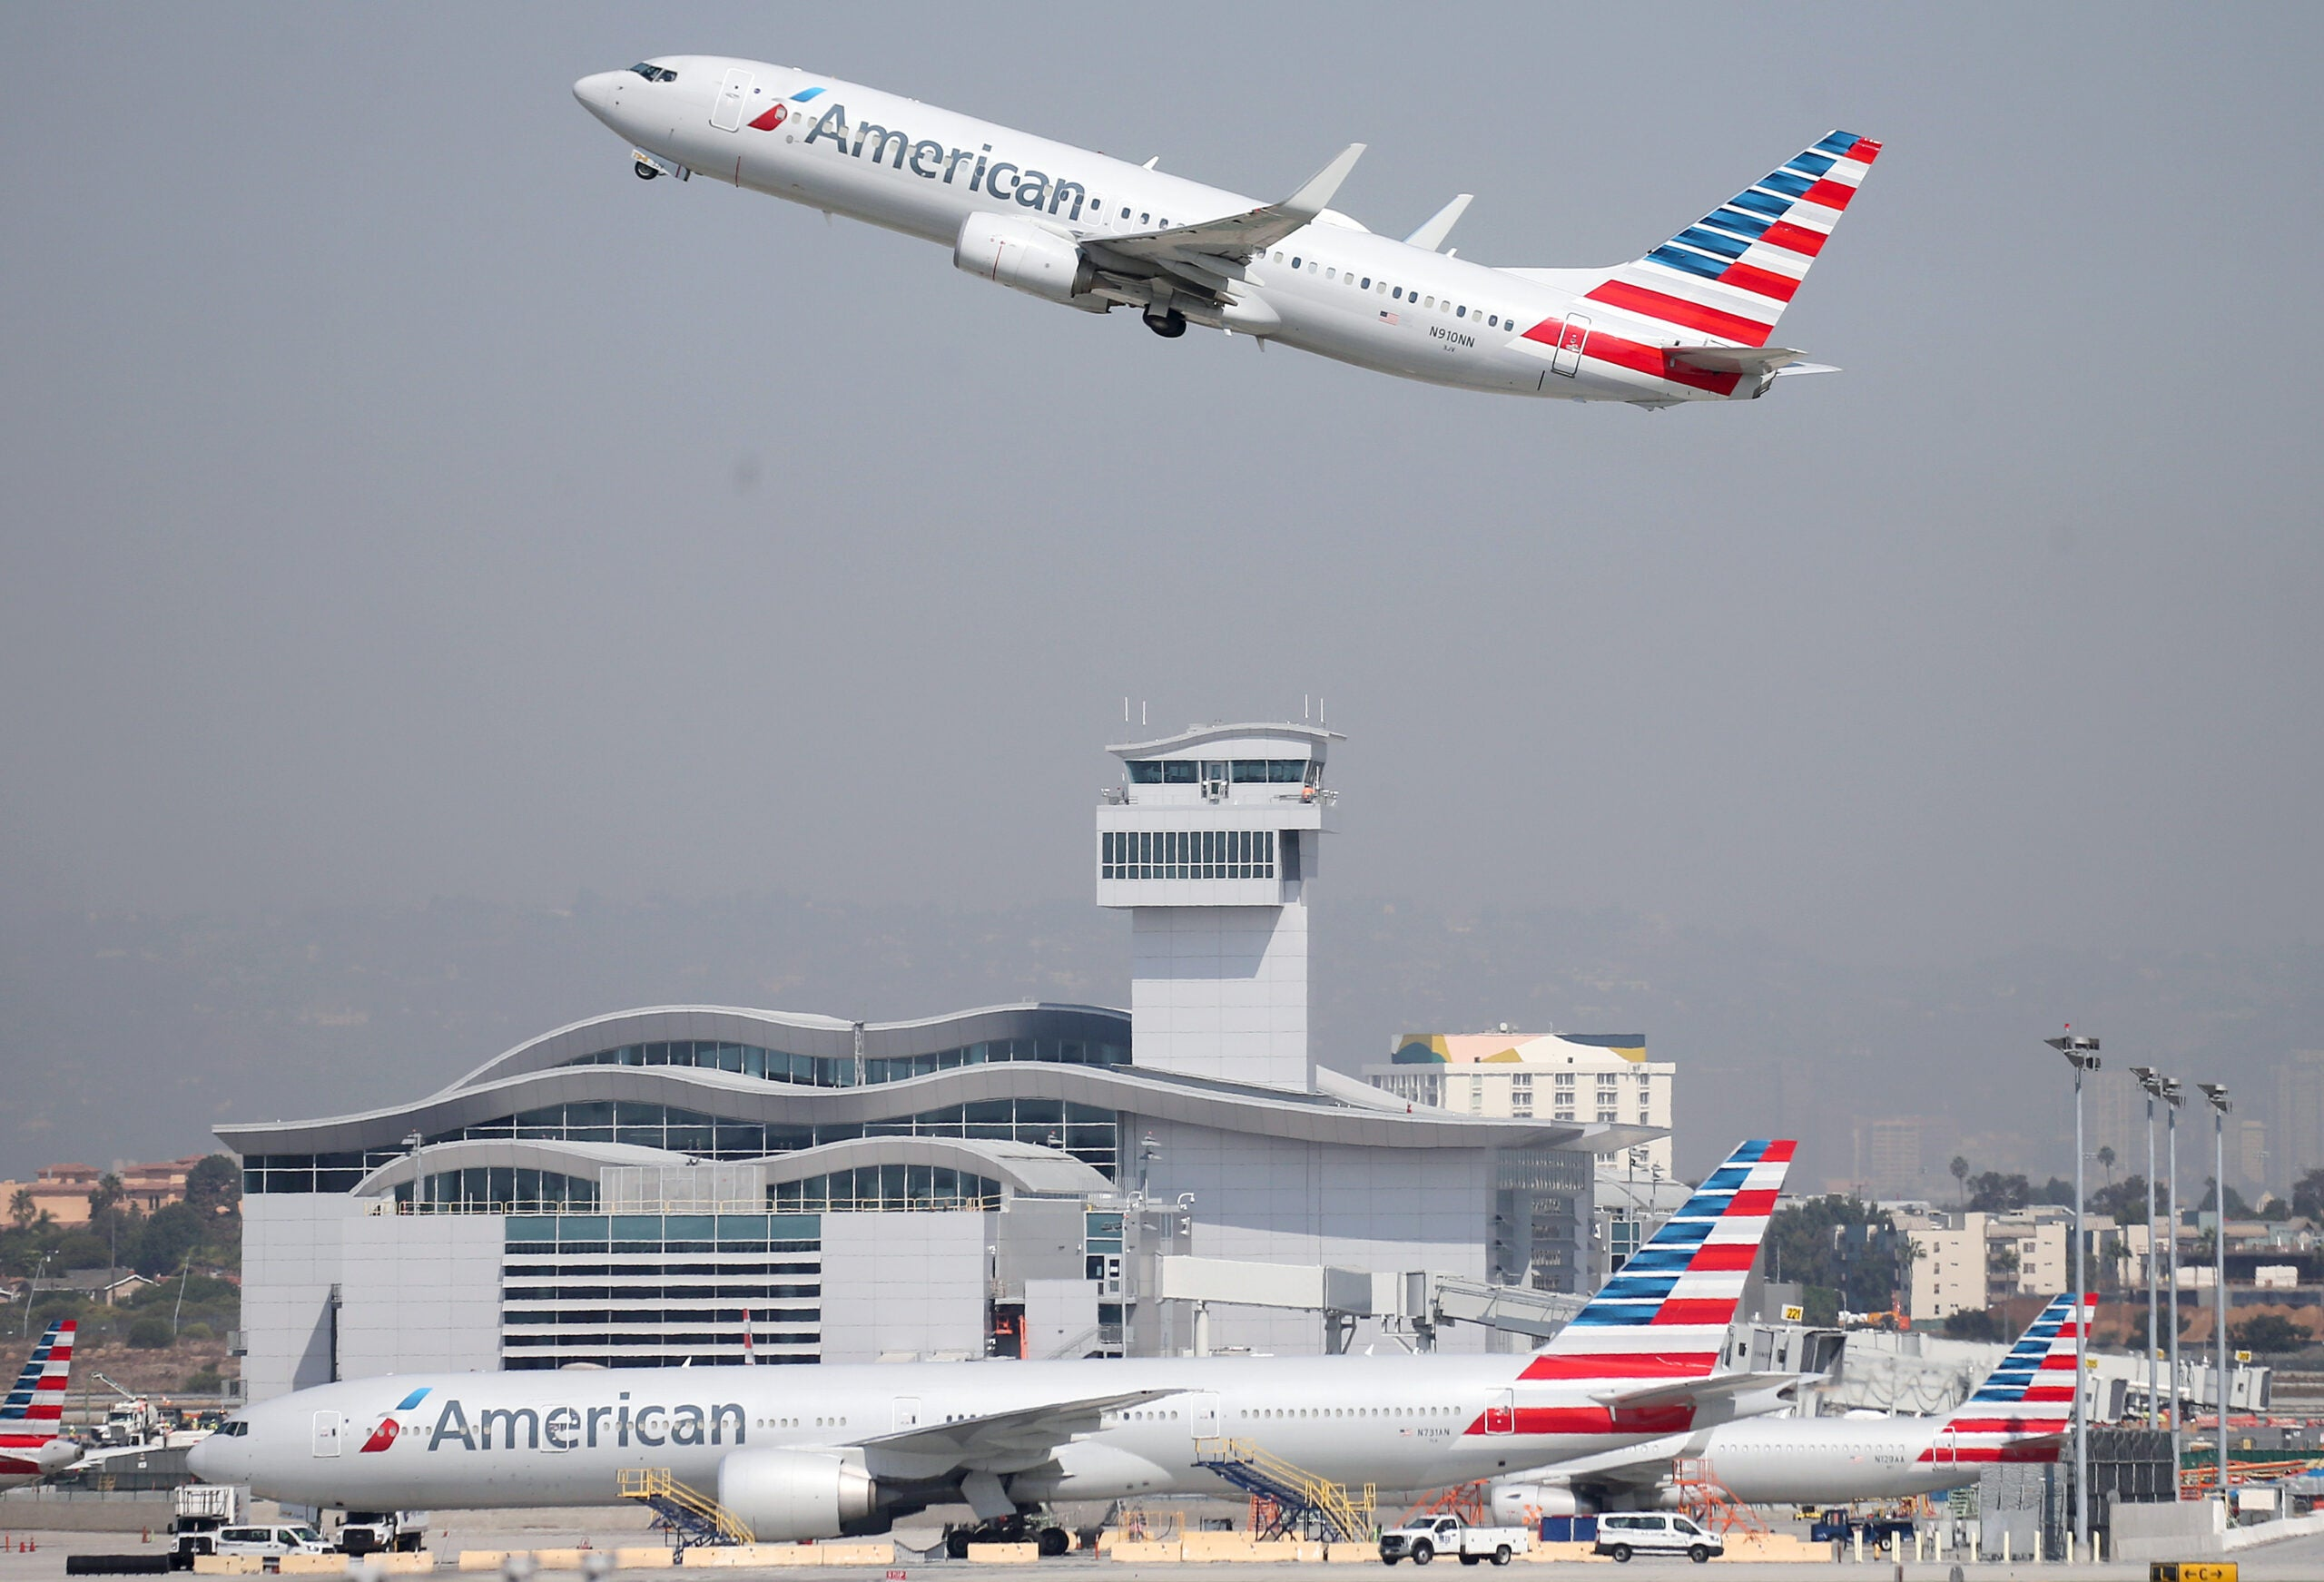 American Airlines facing flight attendant shortage - The Points Guy